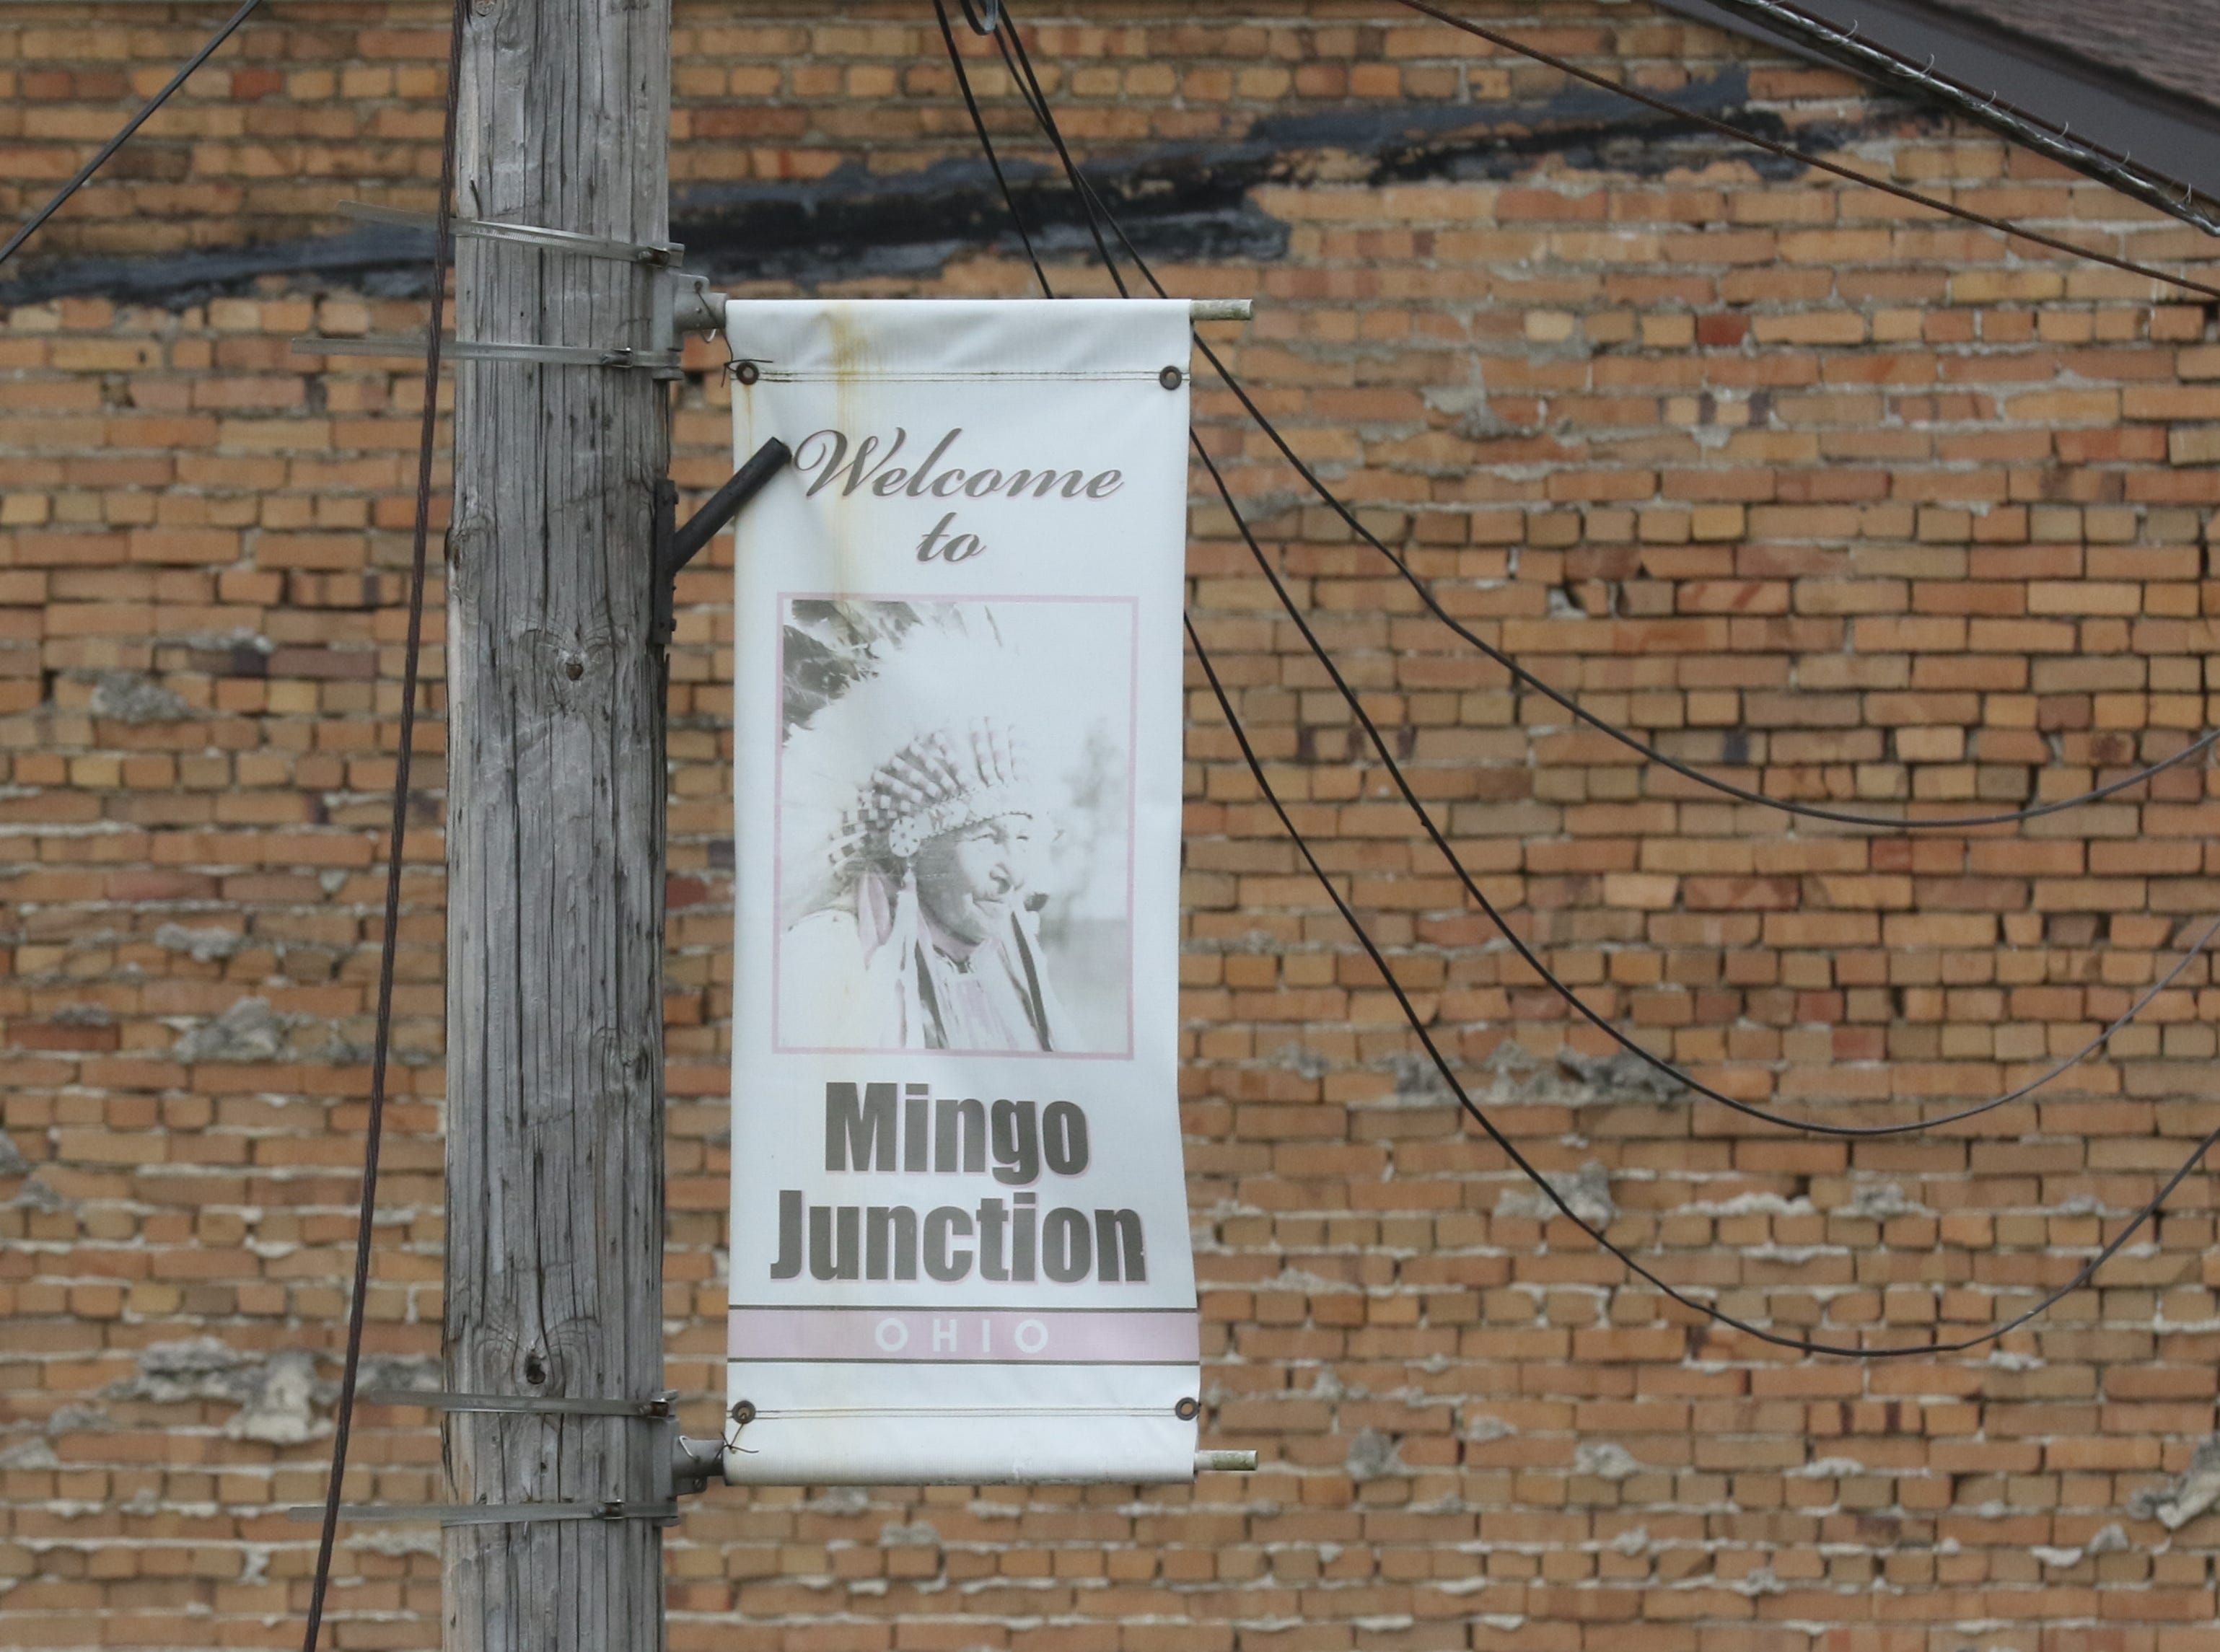 Faded signs and decaying structures line the streets of downtown Mingo Junction.